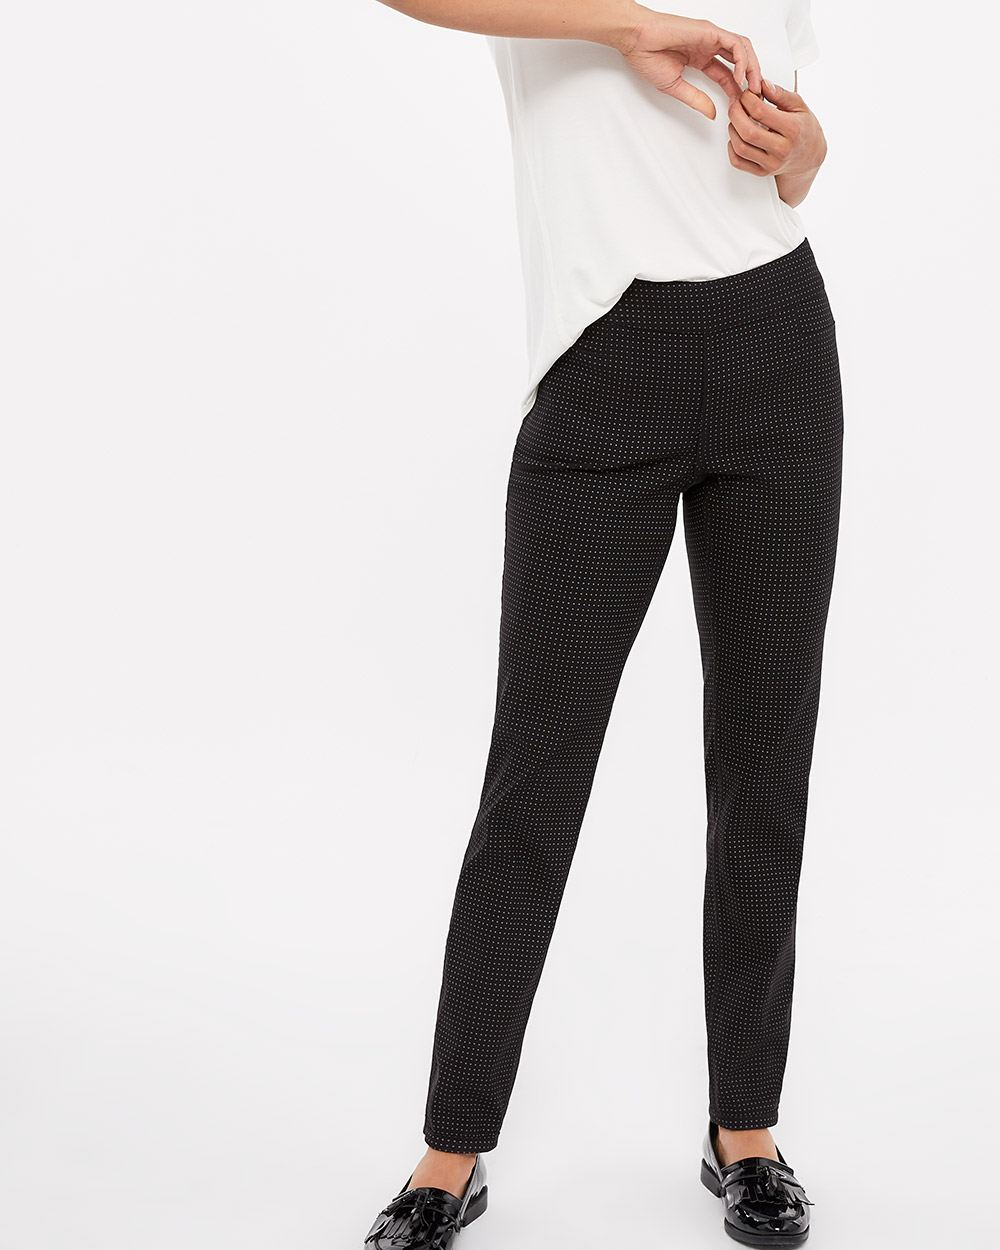 The Petite Iconic Straight Leg Reversible Pants